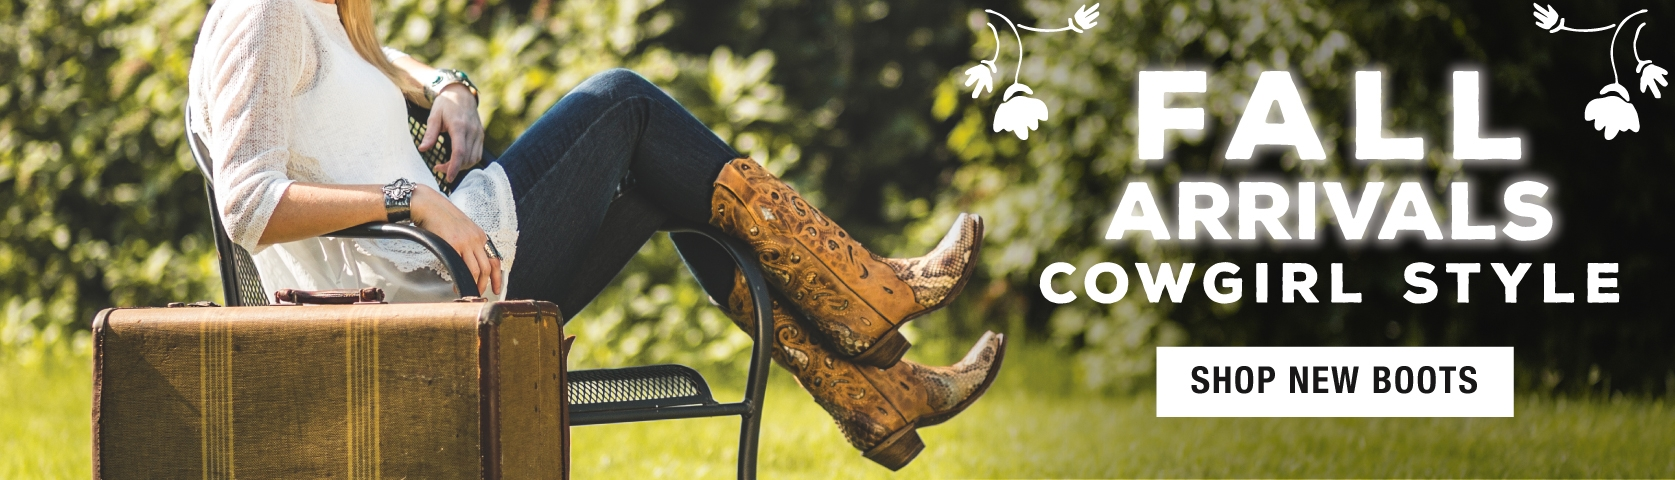 New Fall Cowgirl Boot Arrivals